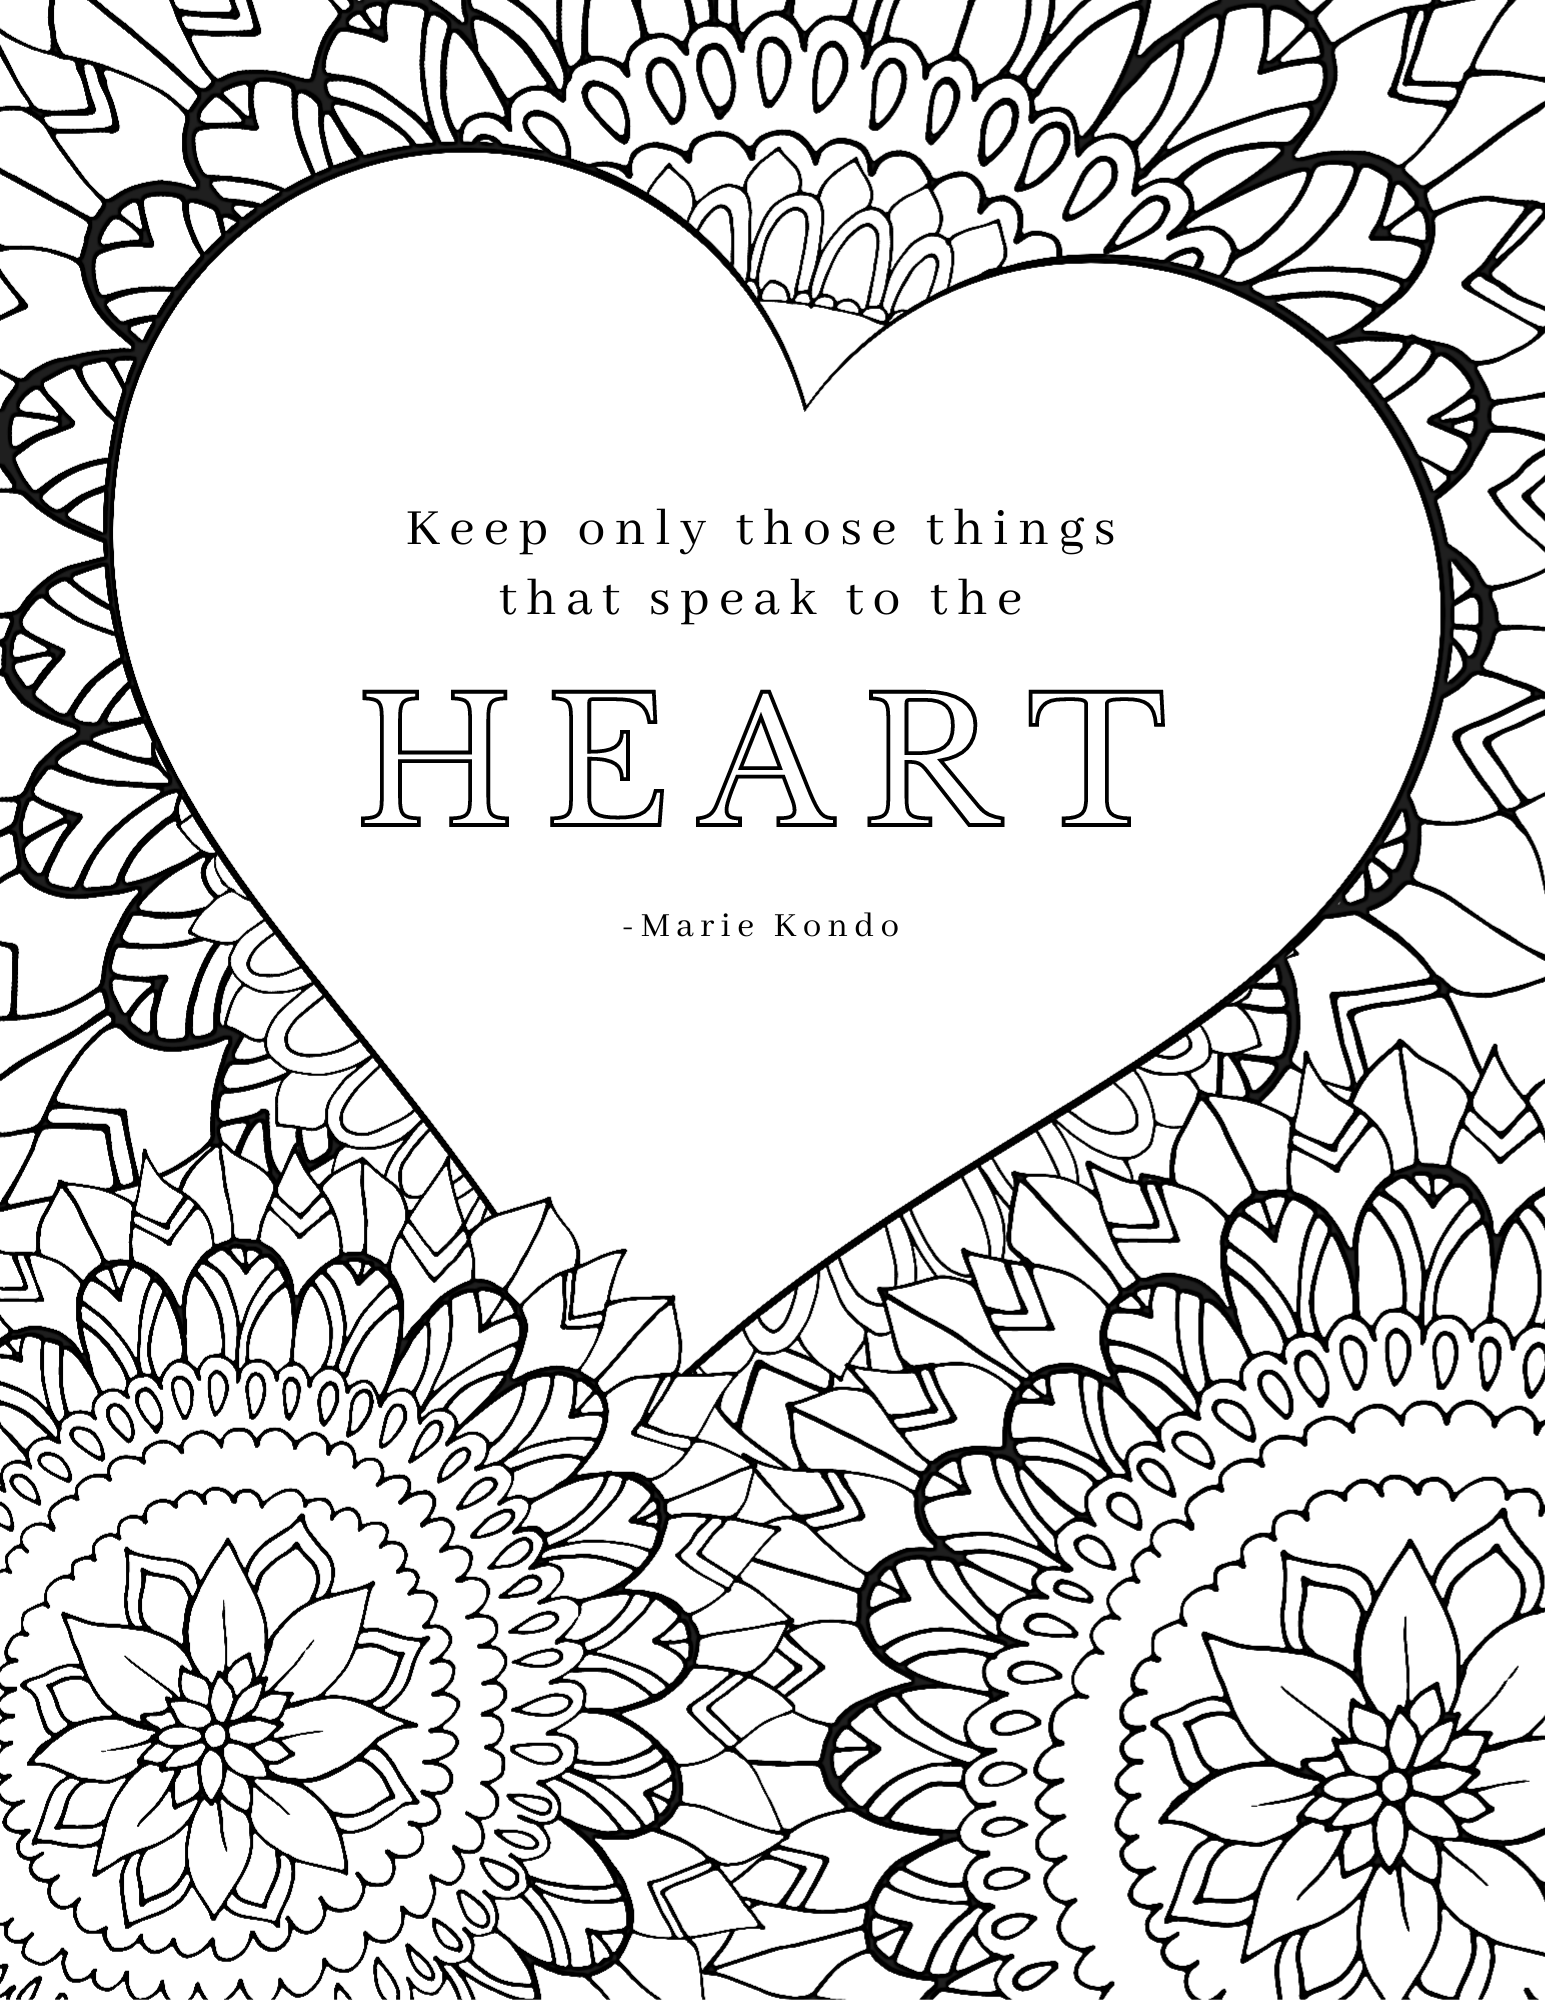 Inspirational Coloring Pages Pdf : inspirational, coloring, pages, Inspirational, Quote, Coloring, Pages, Adults